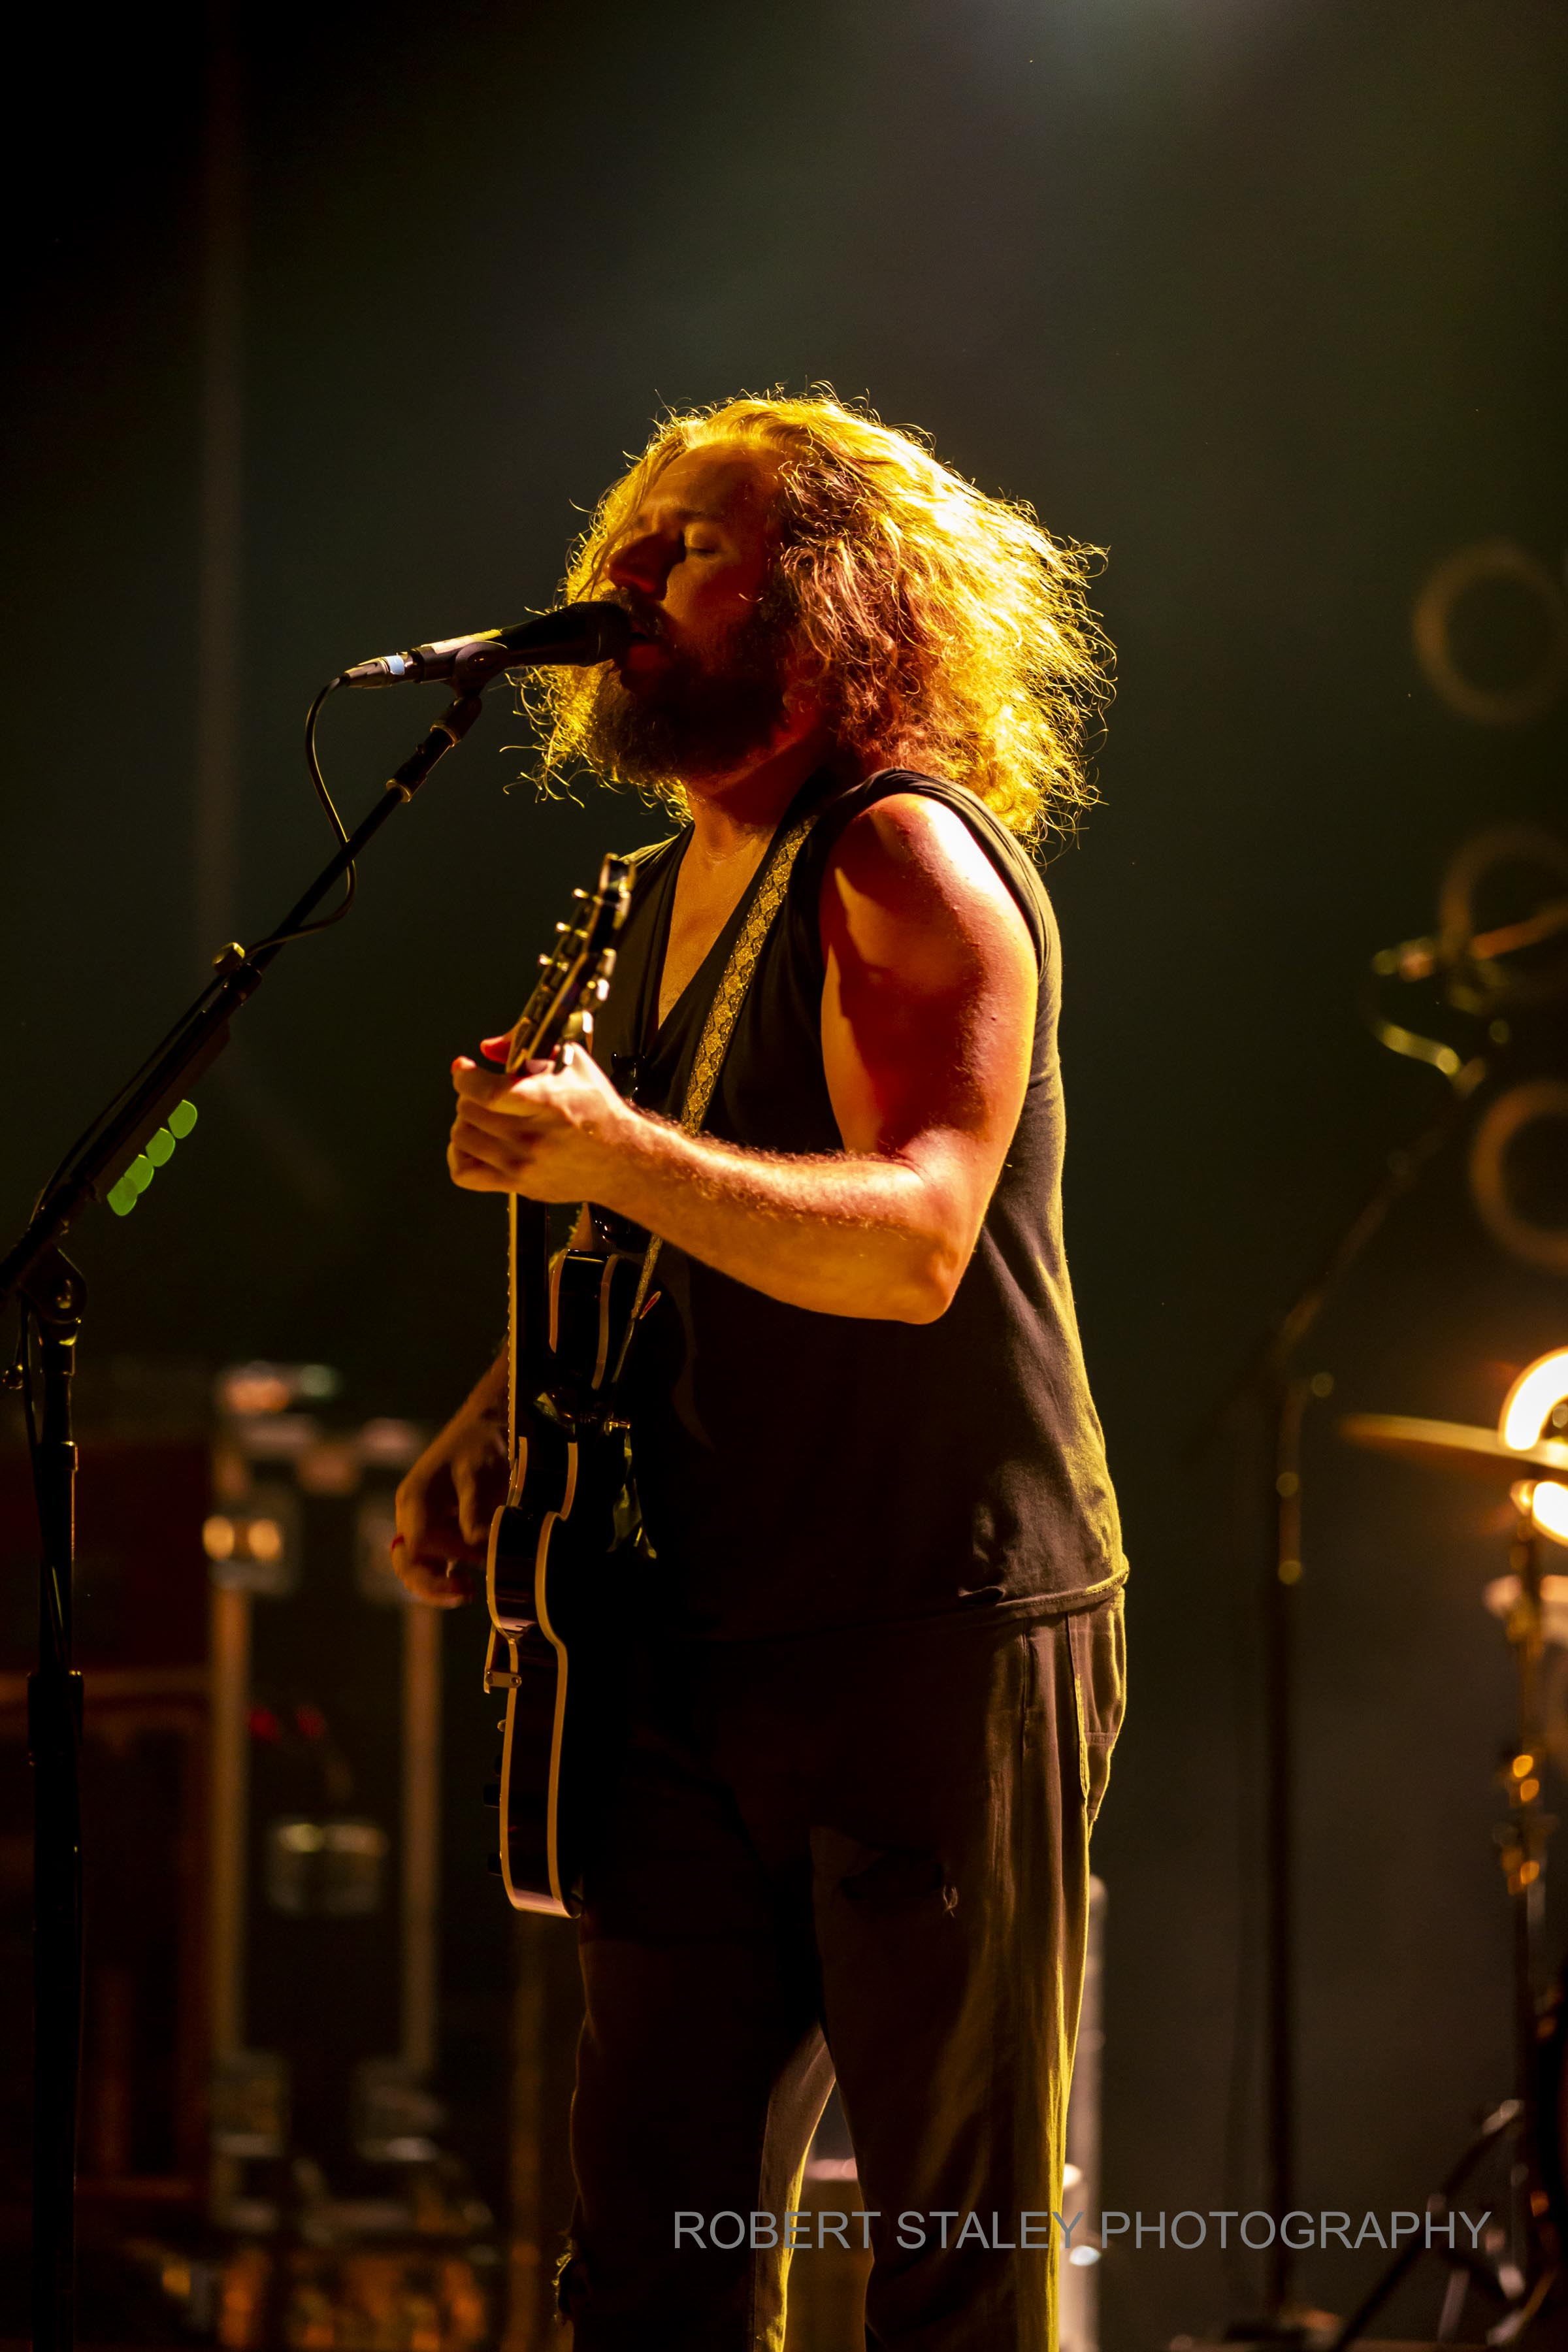 2019_07_02_jim_james_anaheim_hob-141.jpg